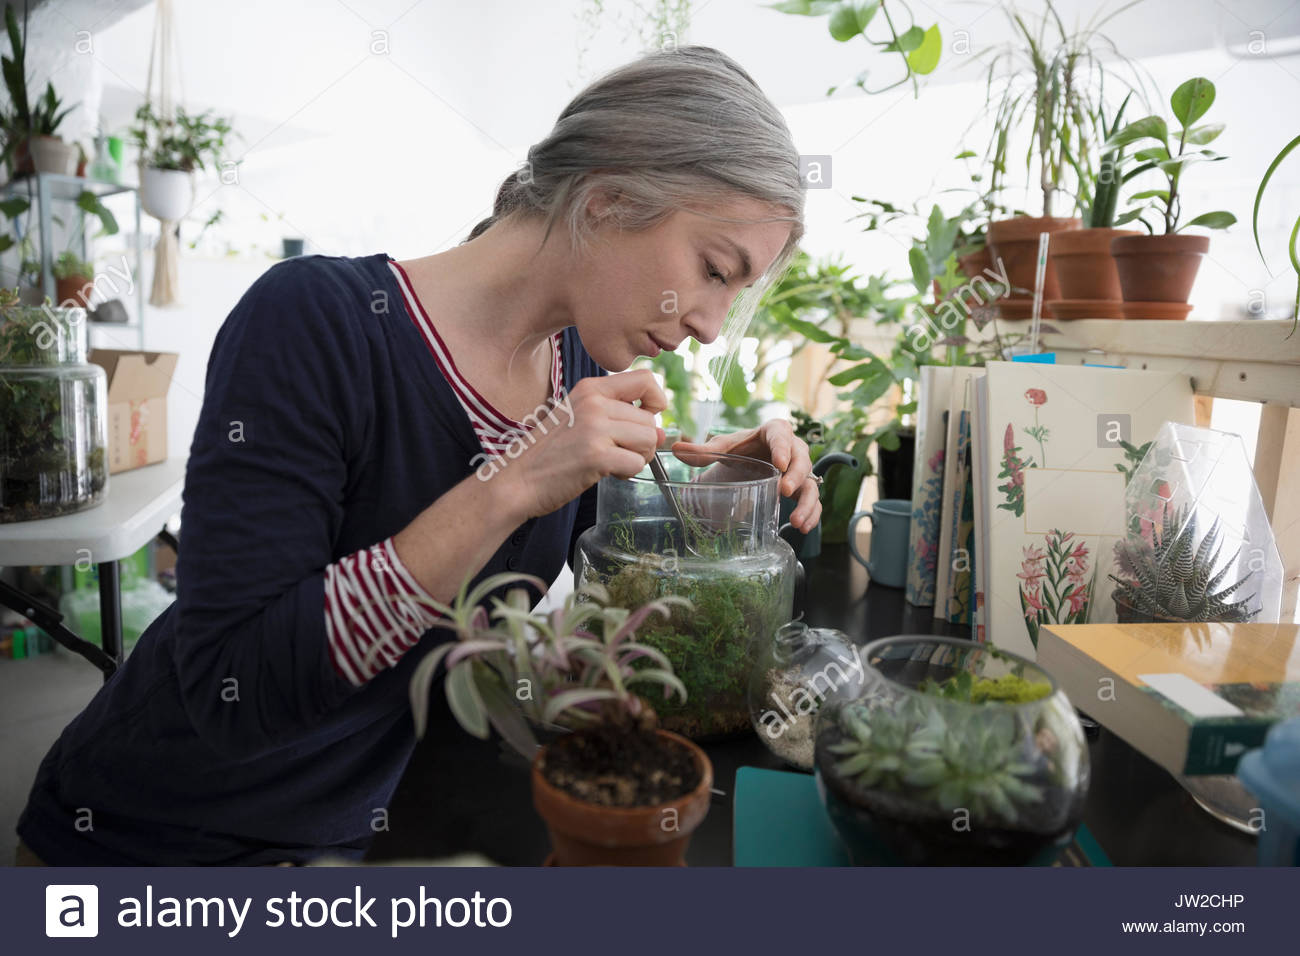 Woman using tweezers, making succulent plant terrarium - Stock Image